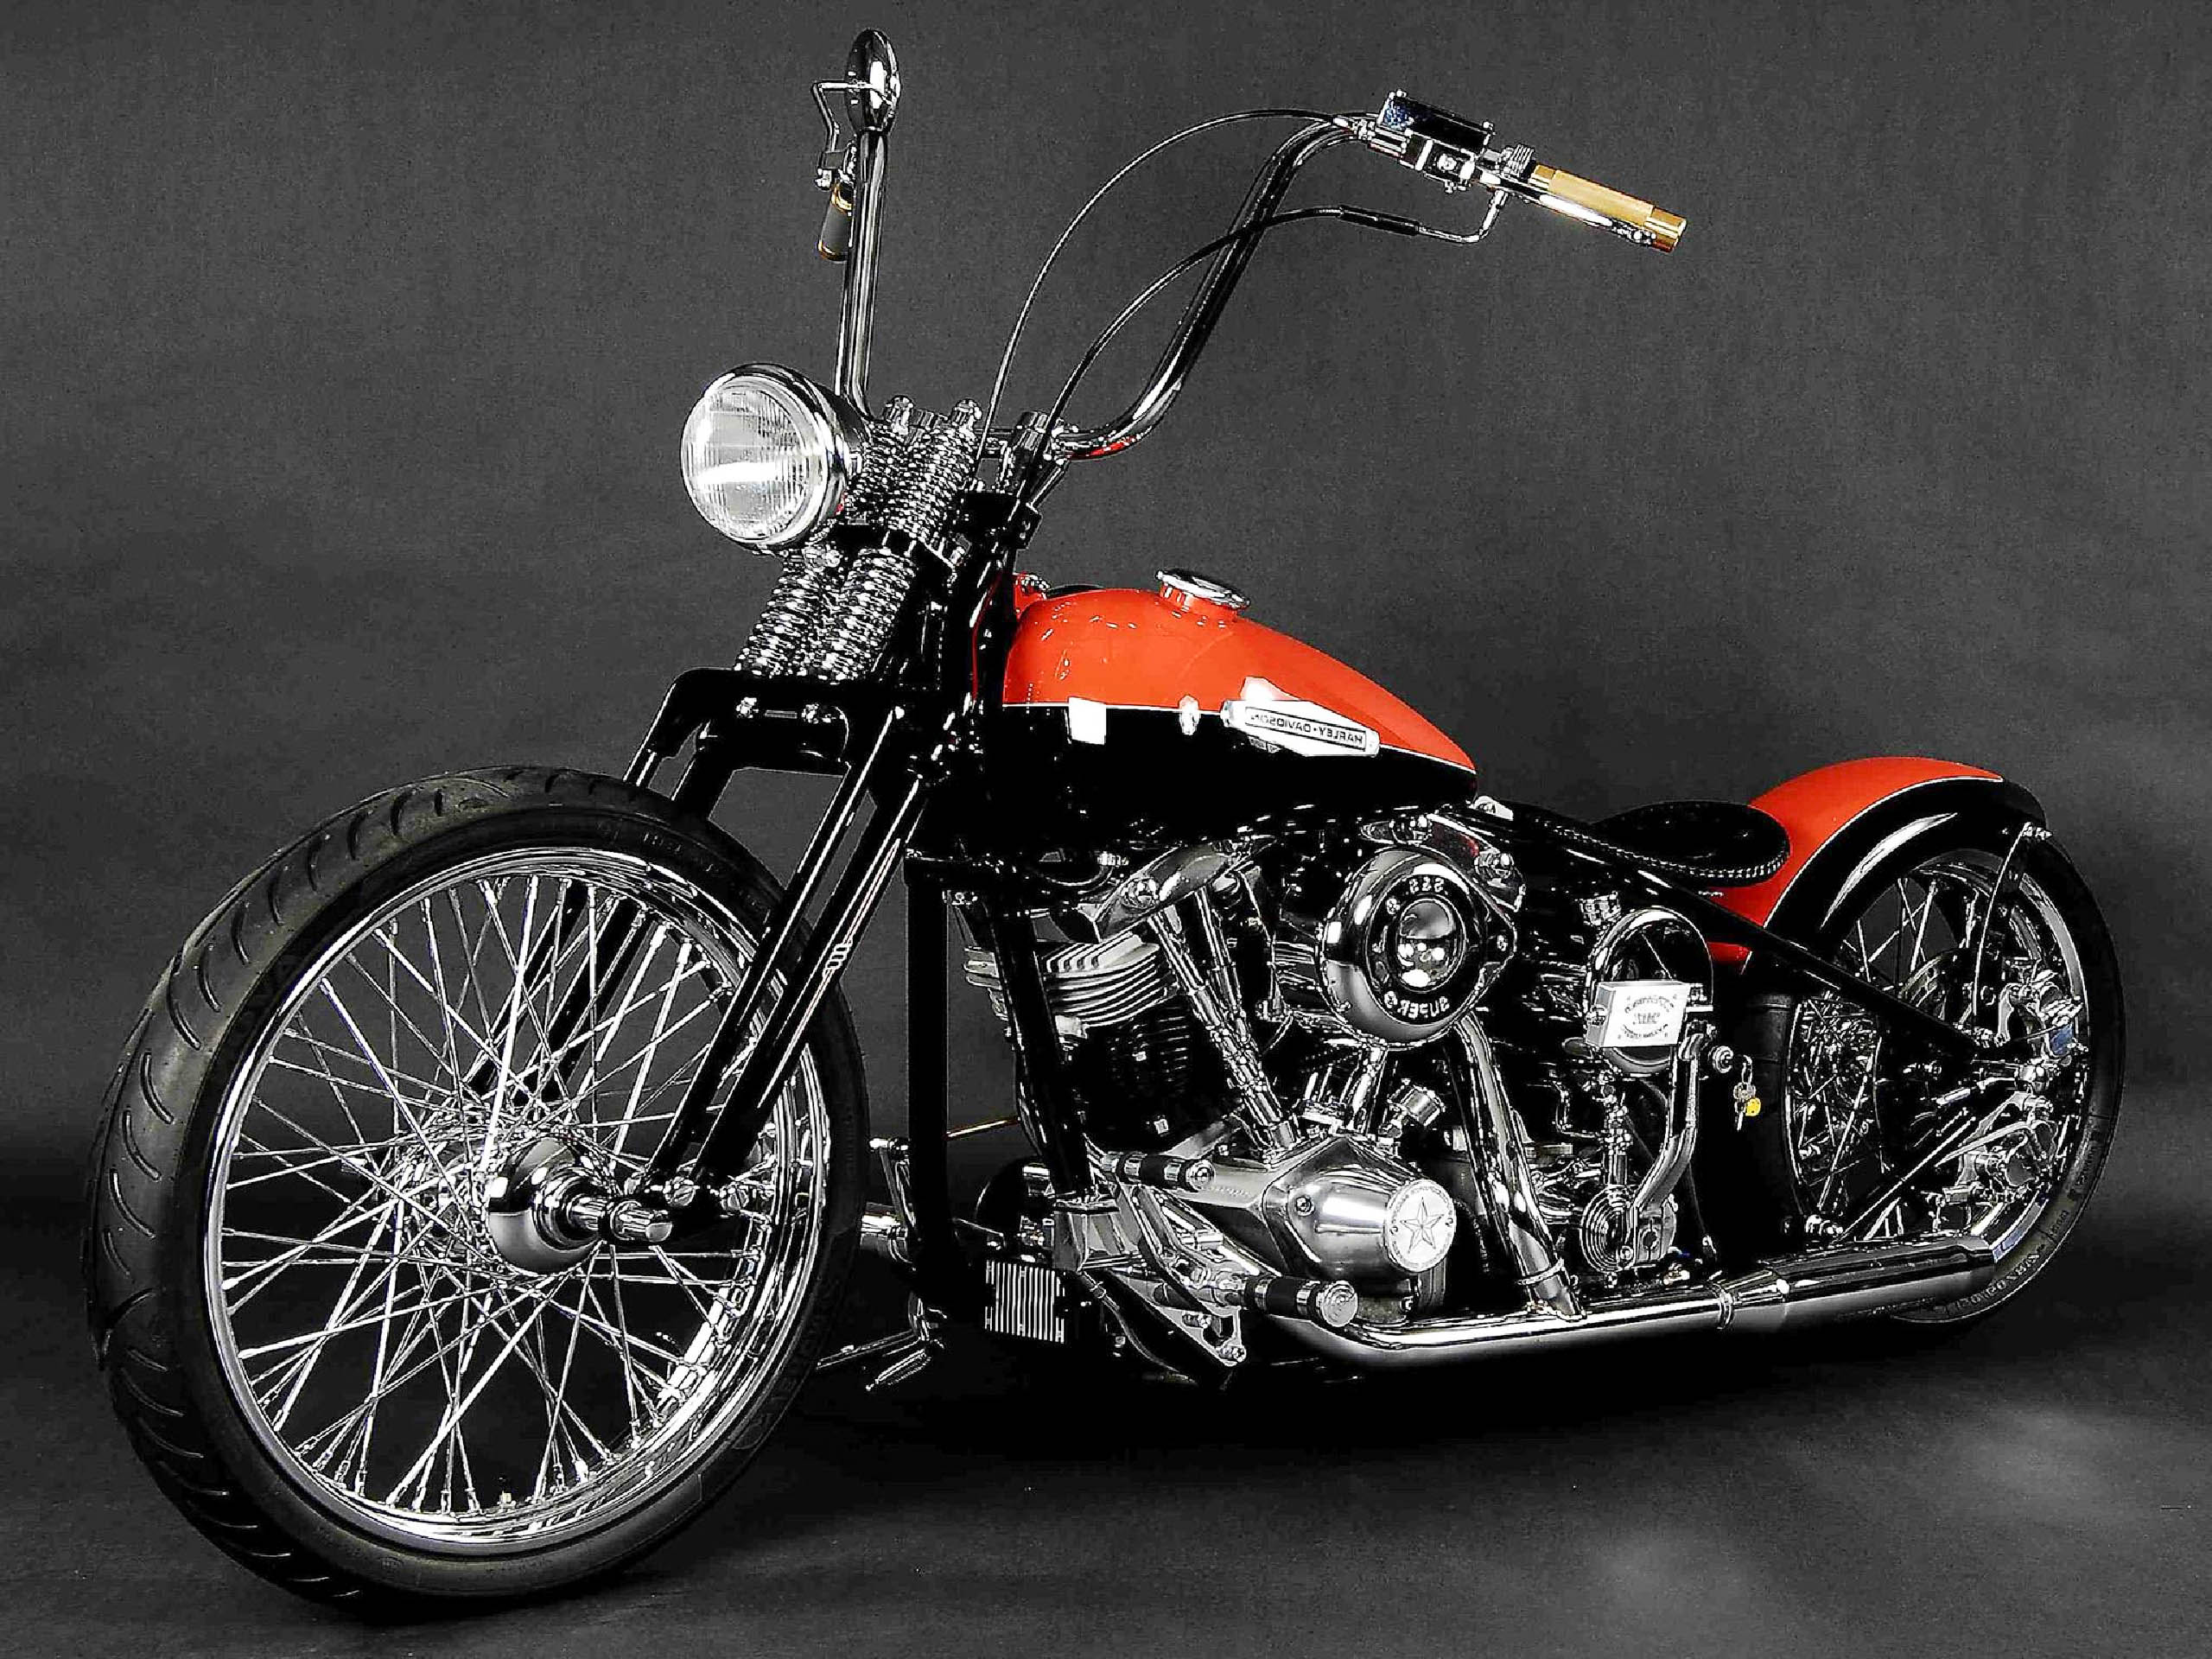 Harley Davidson Special 2017 High Definition Wallpapers